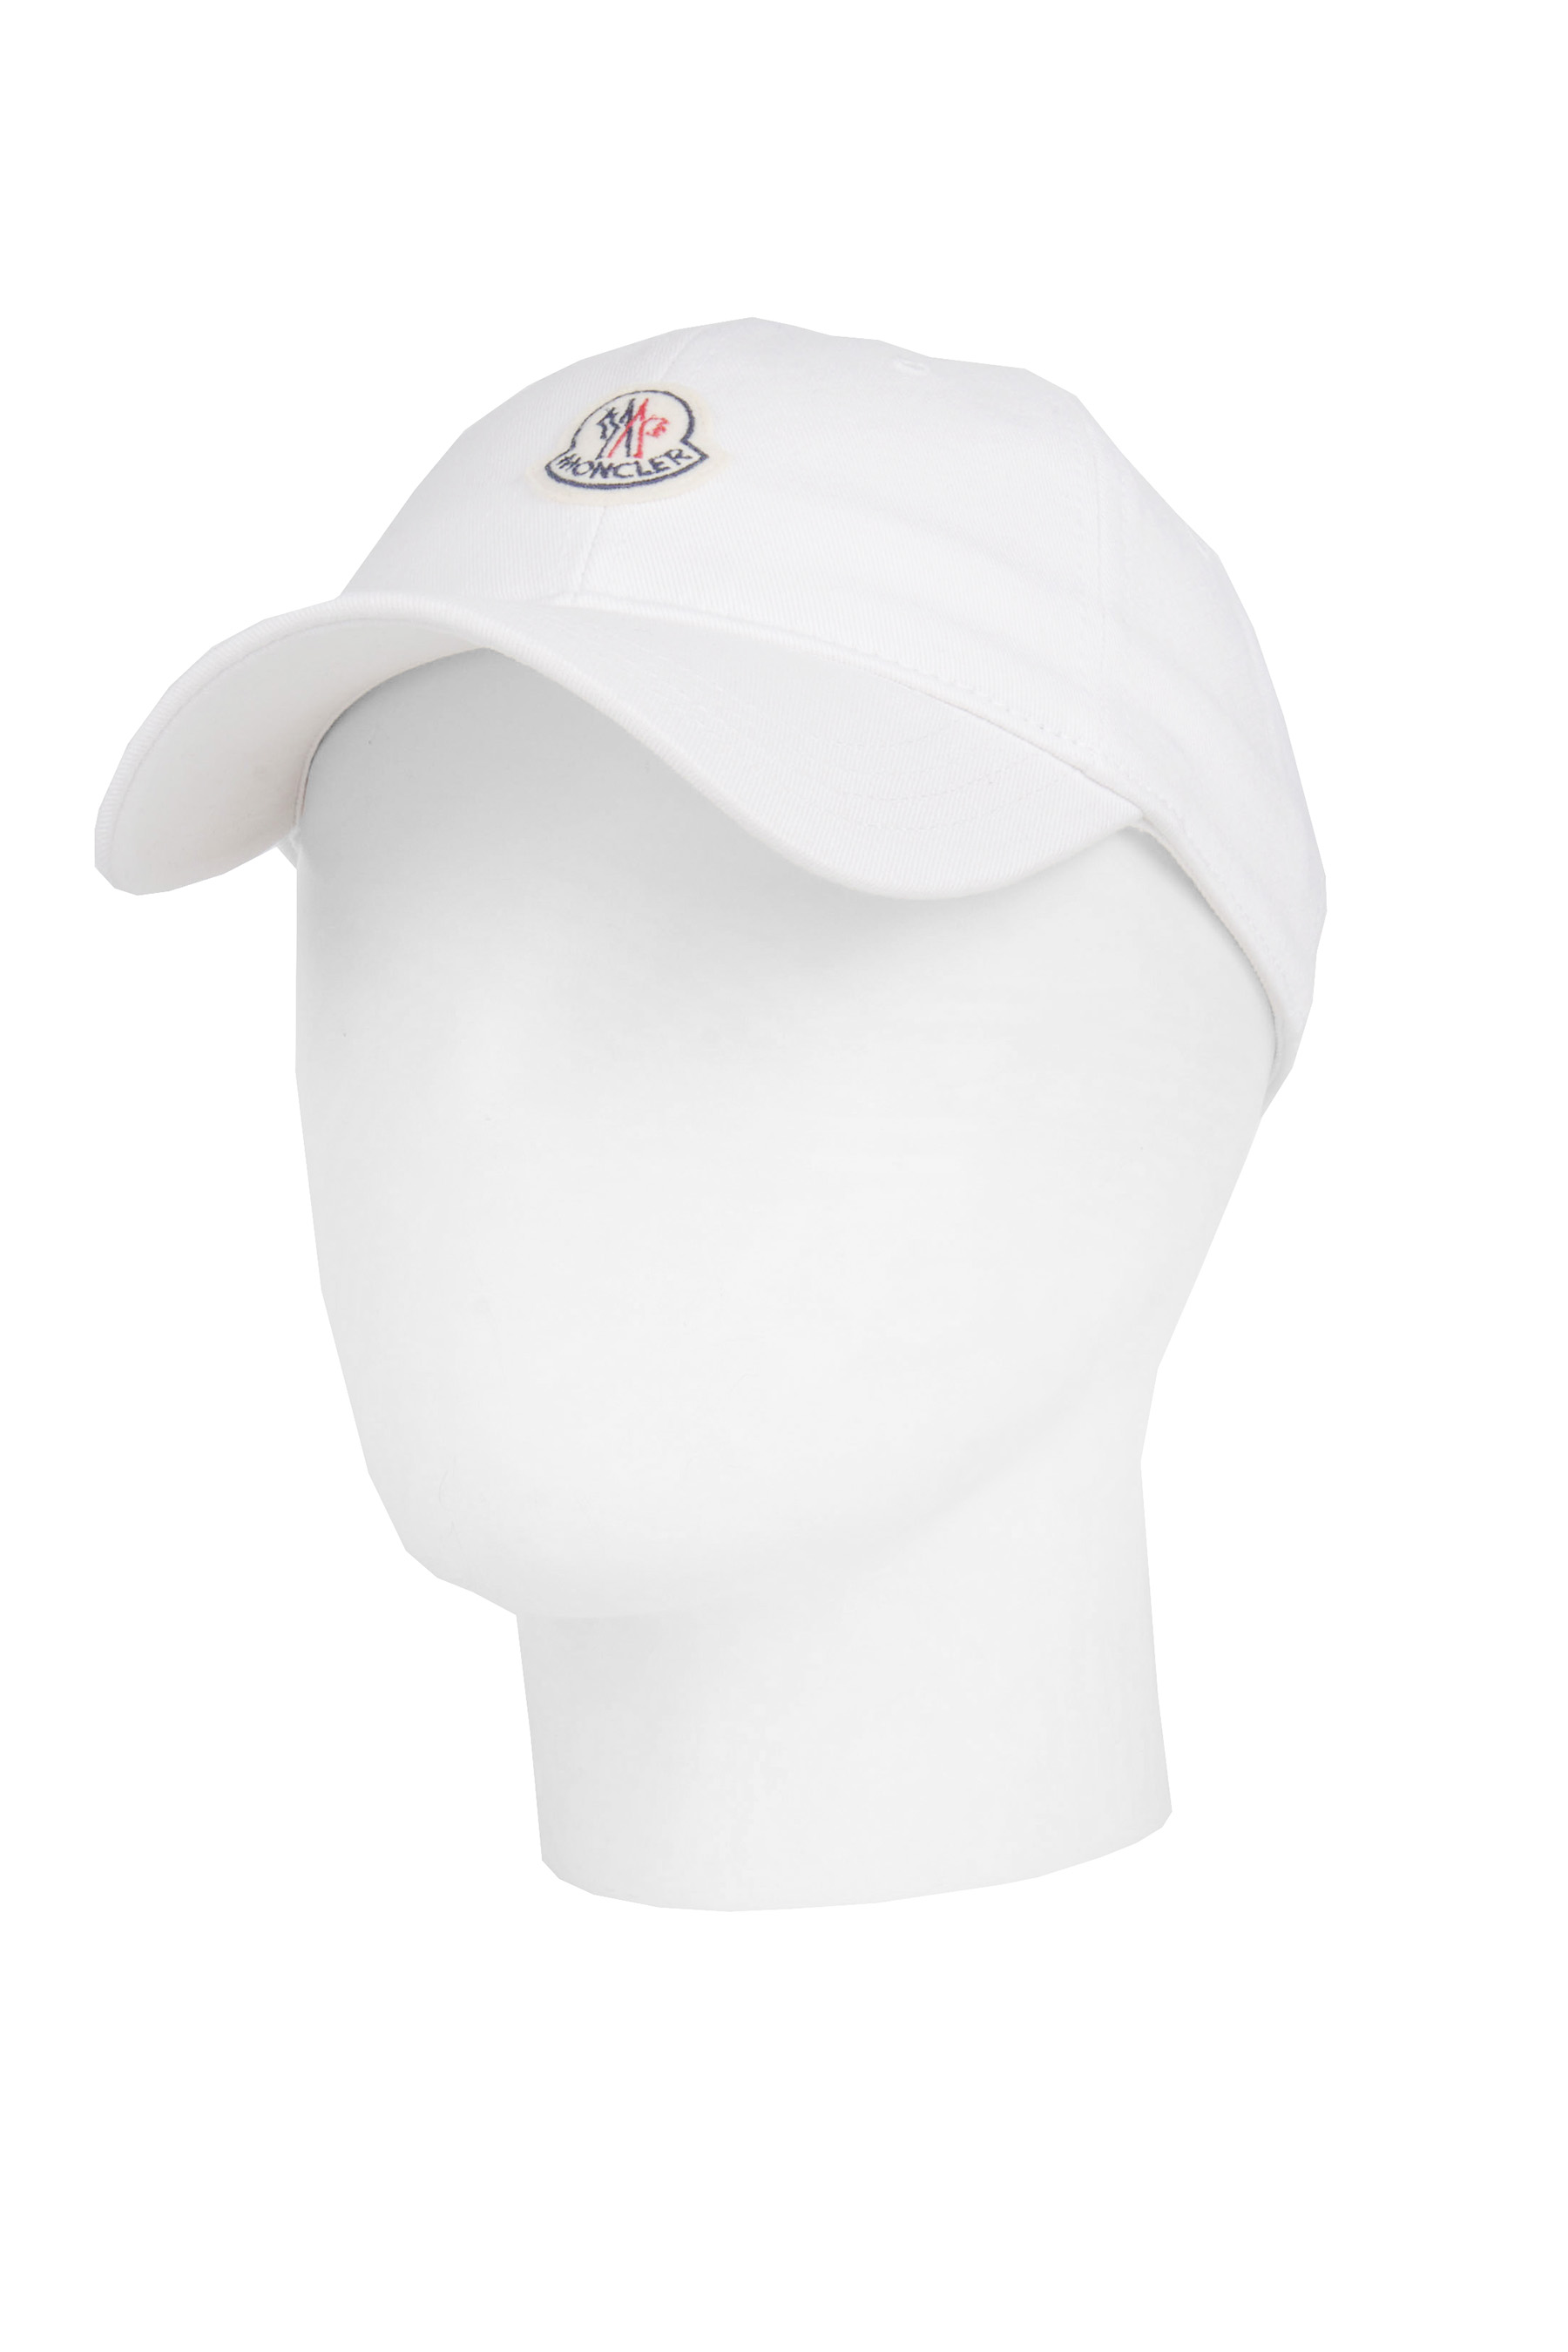 be074a3fec0 Preview  MONCLER Logo Cap ...